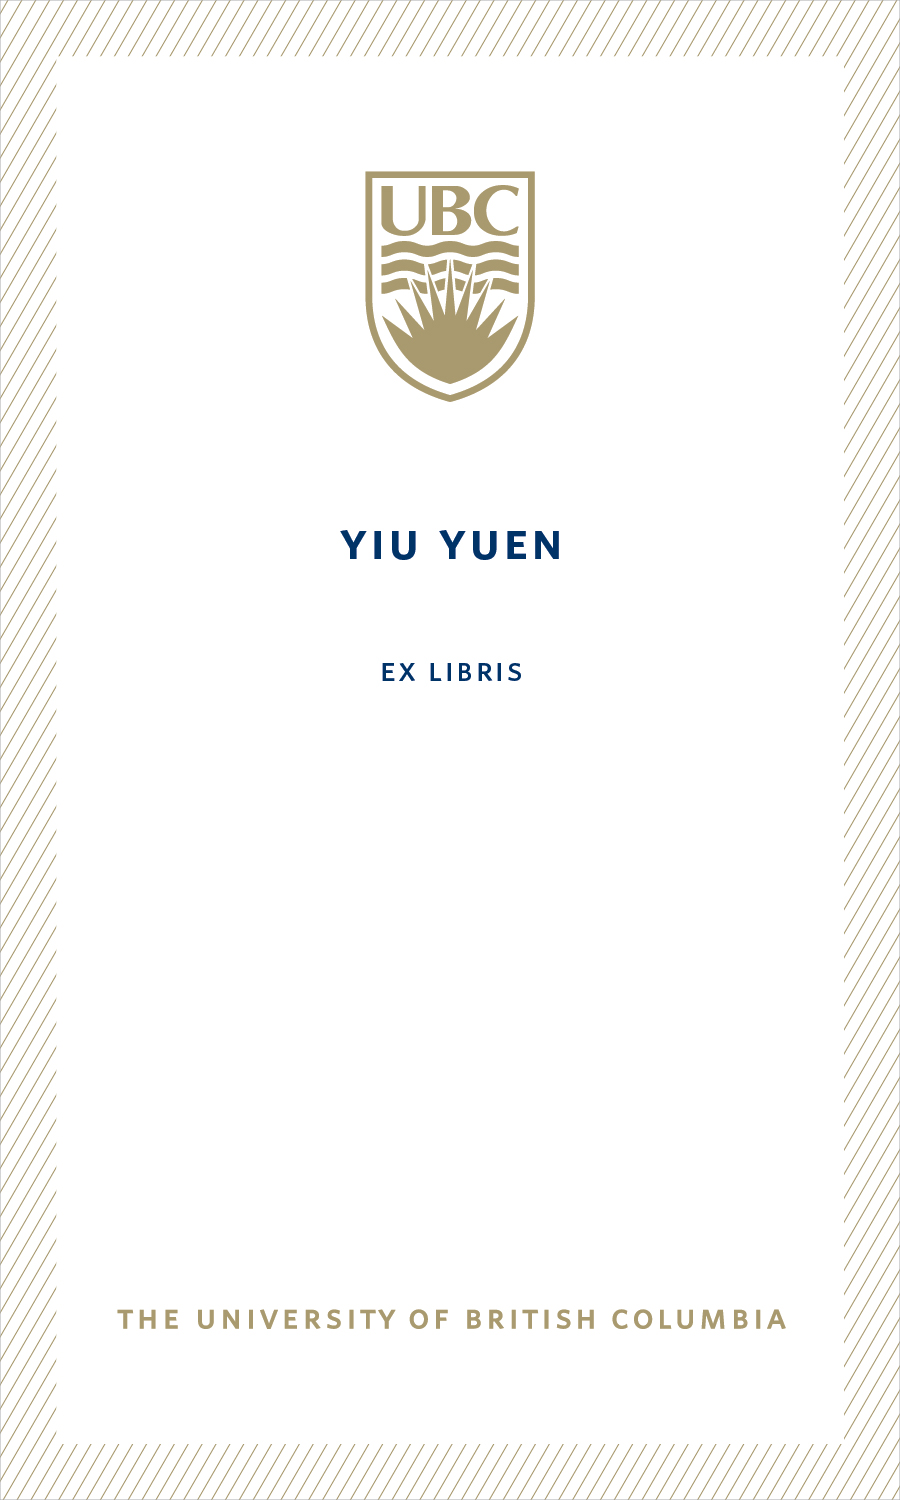 Ubc Bookplate From Yiu Yuen Support Ubc Library